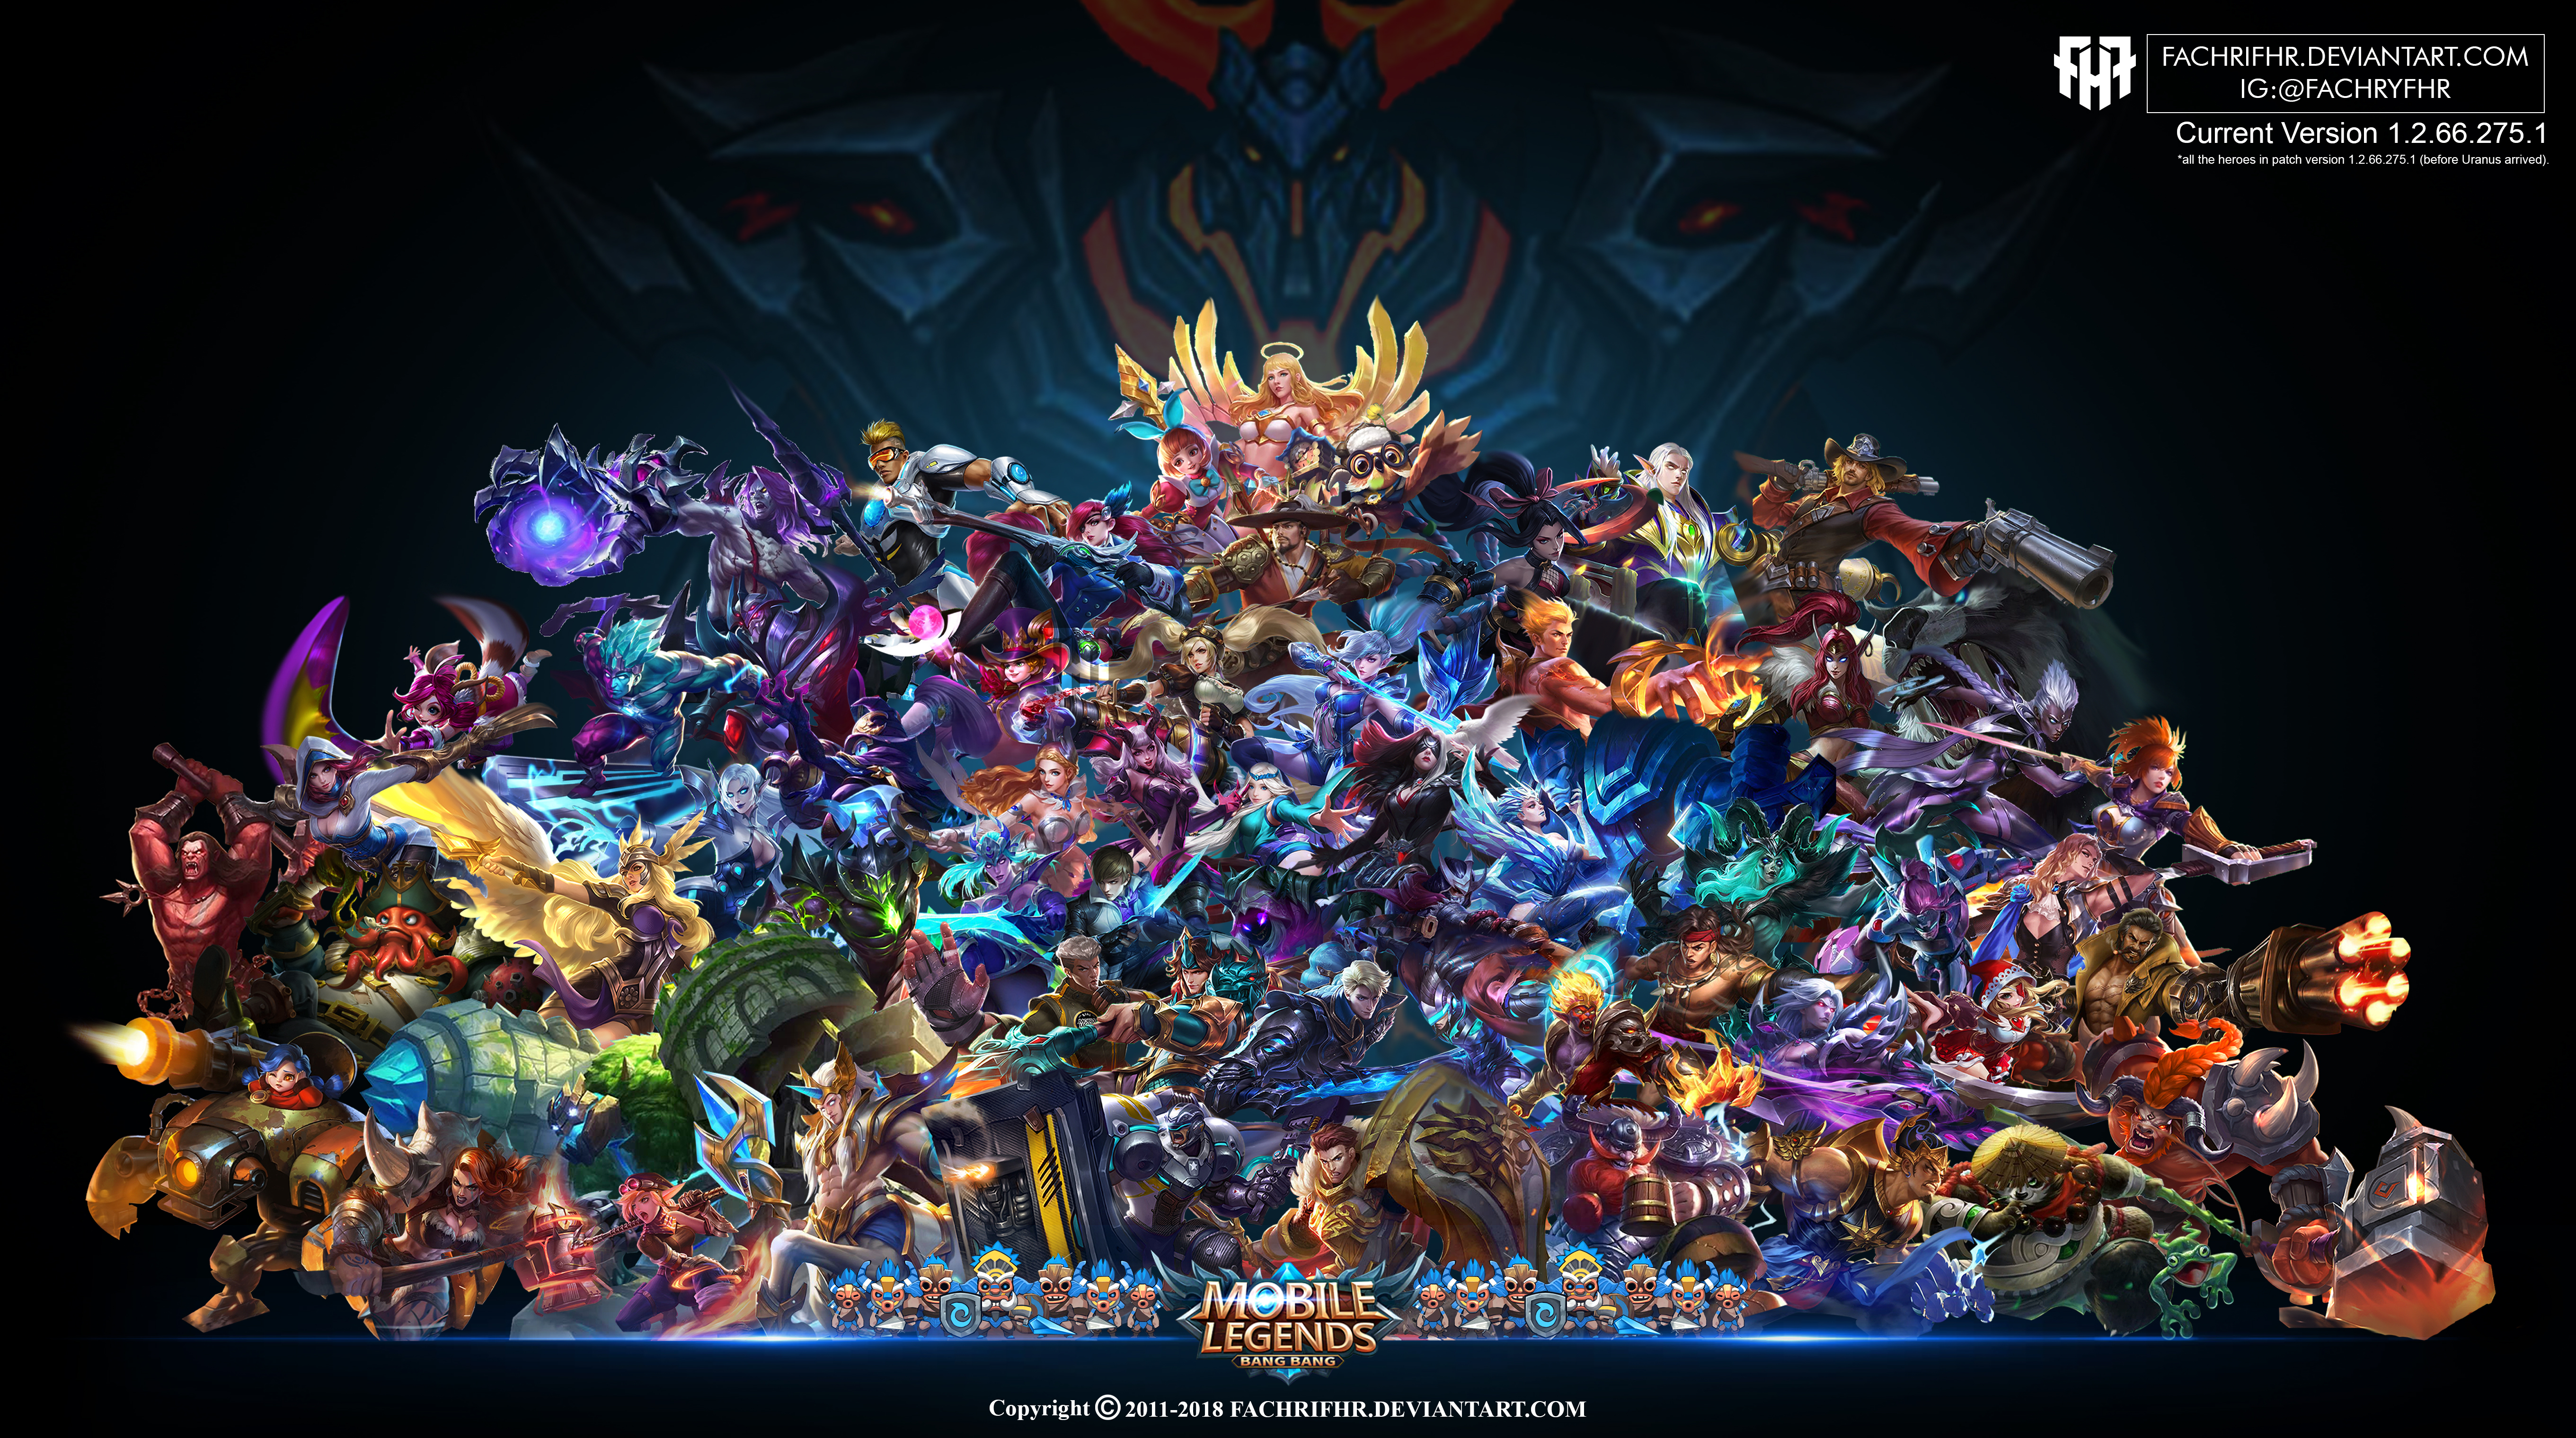 wallpaper desktop pc mobile legend hd all hero by fachrifhr dcav3ro